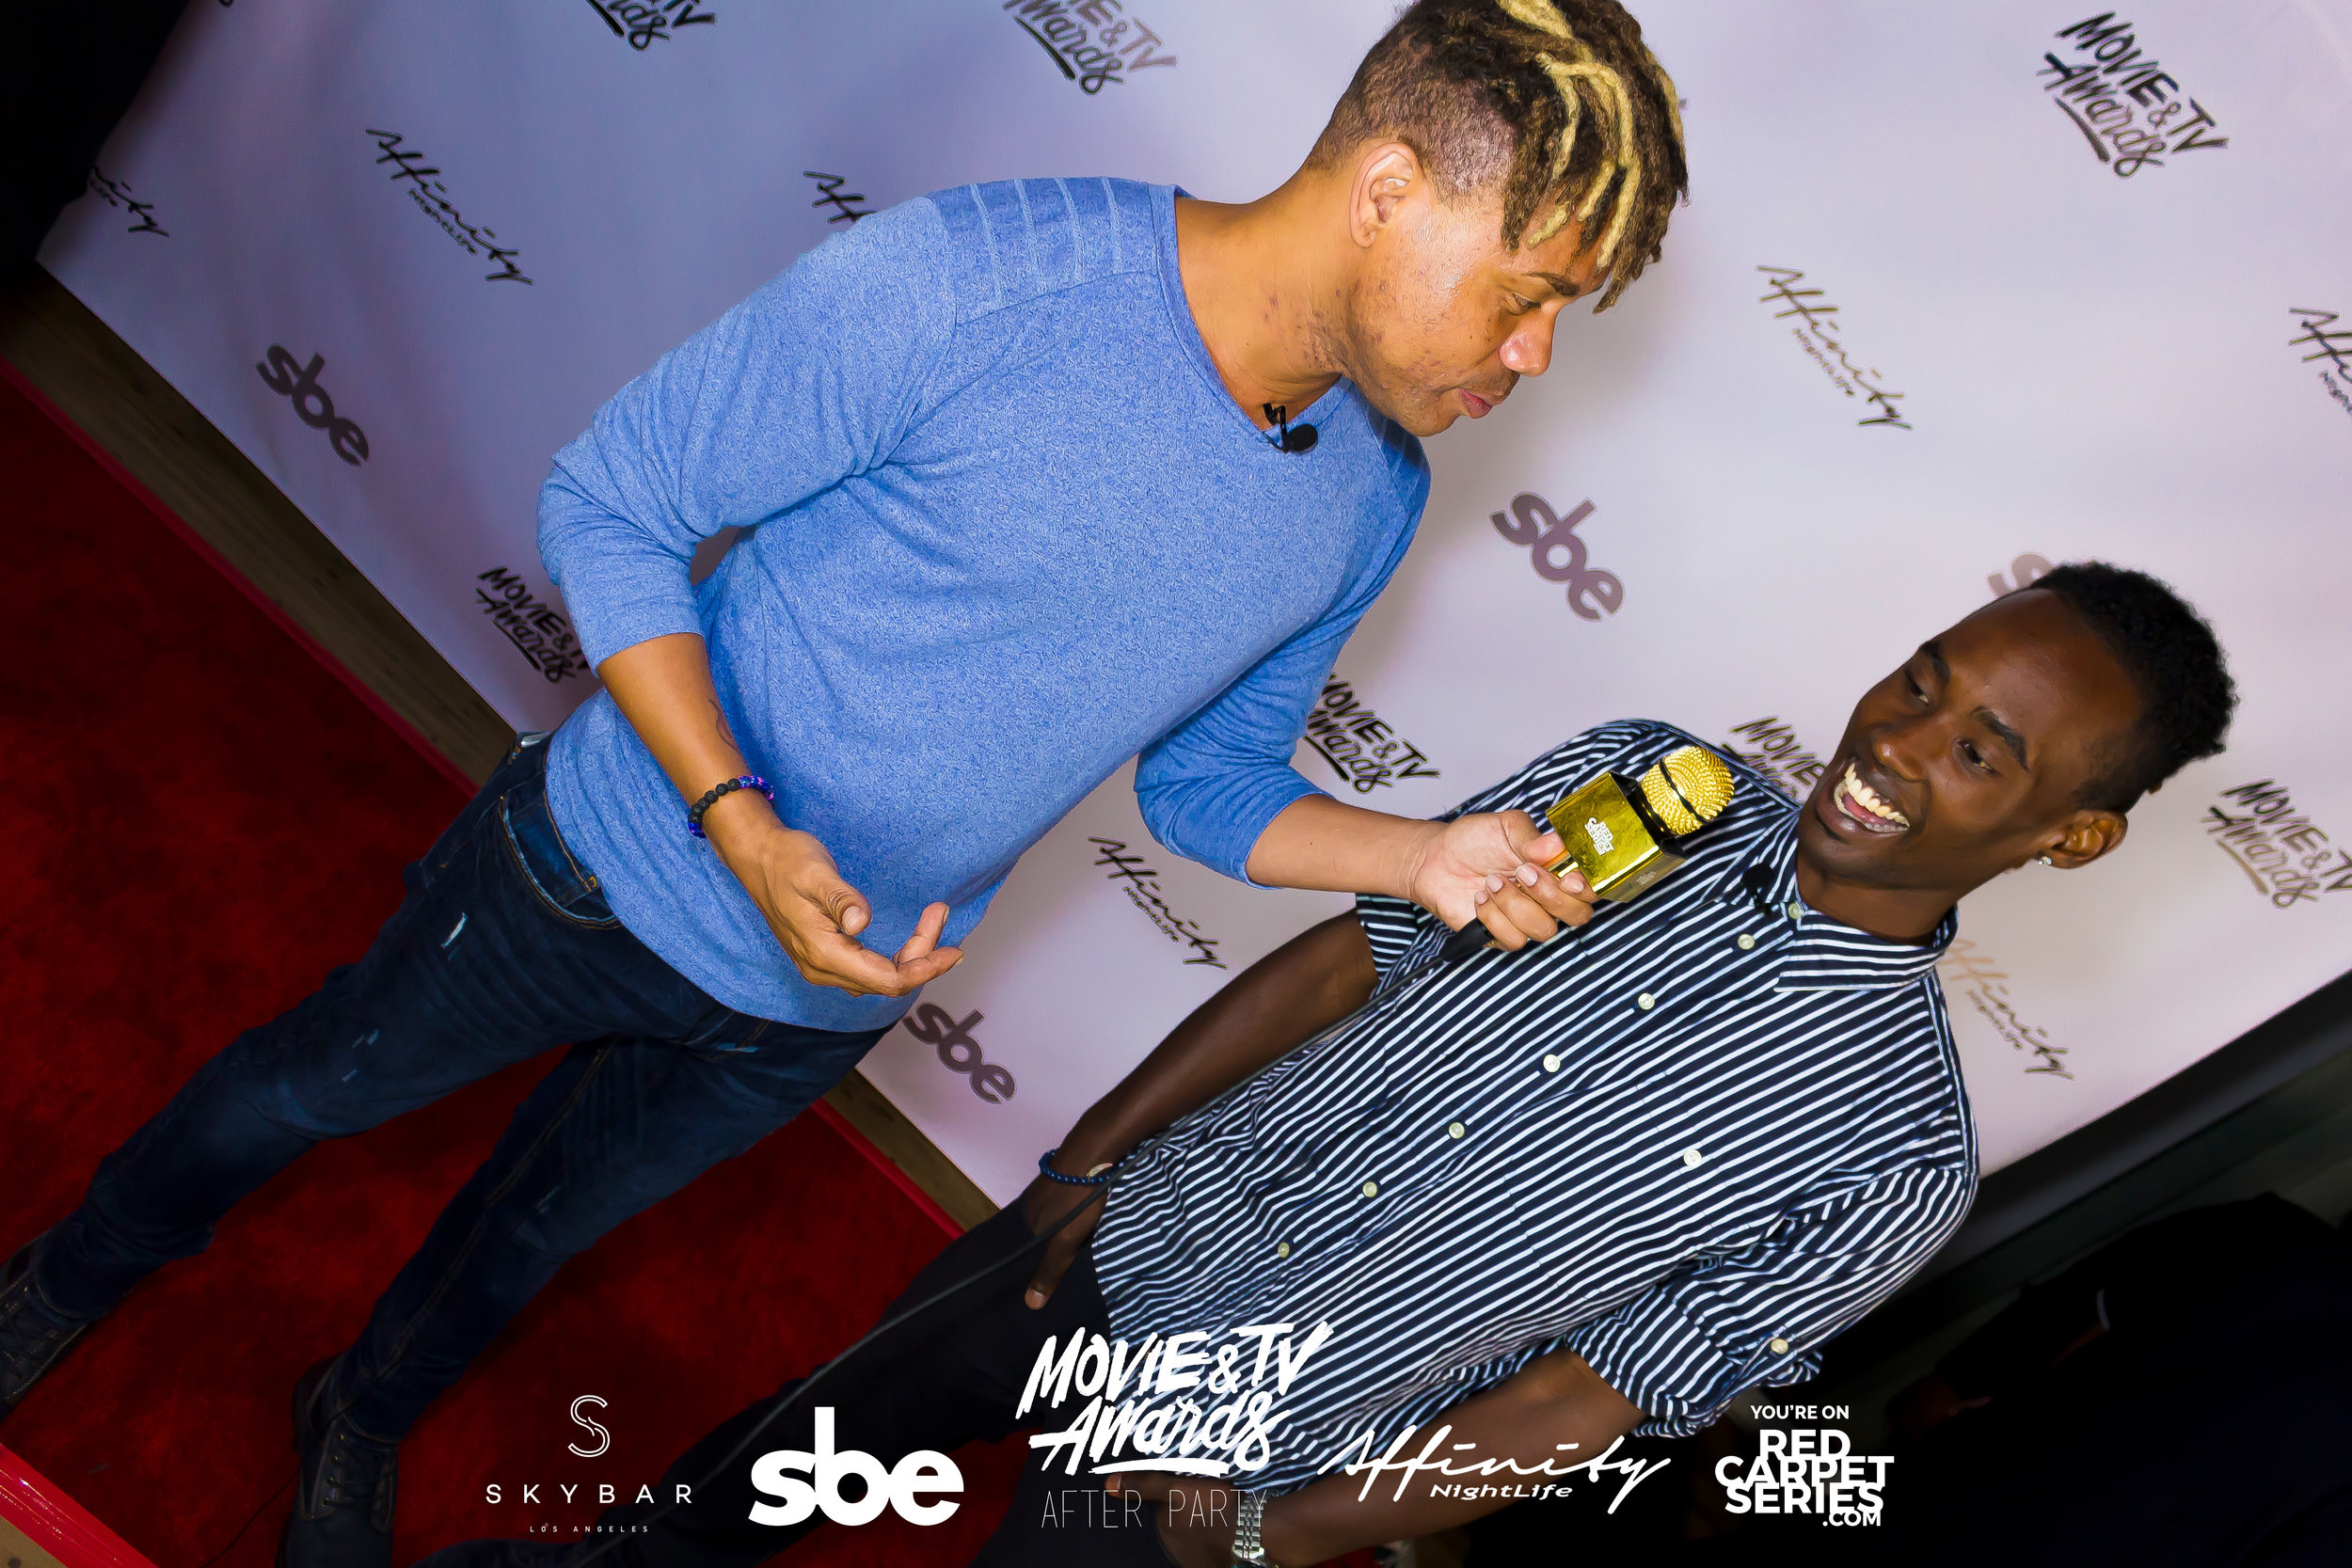 Affinity Nightlife MTV Movie & TV Awards After Party - Skybar at Mondrian - 06-15-19 - Vol. 1_126.jpg